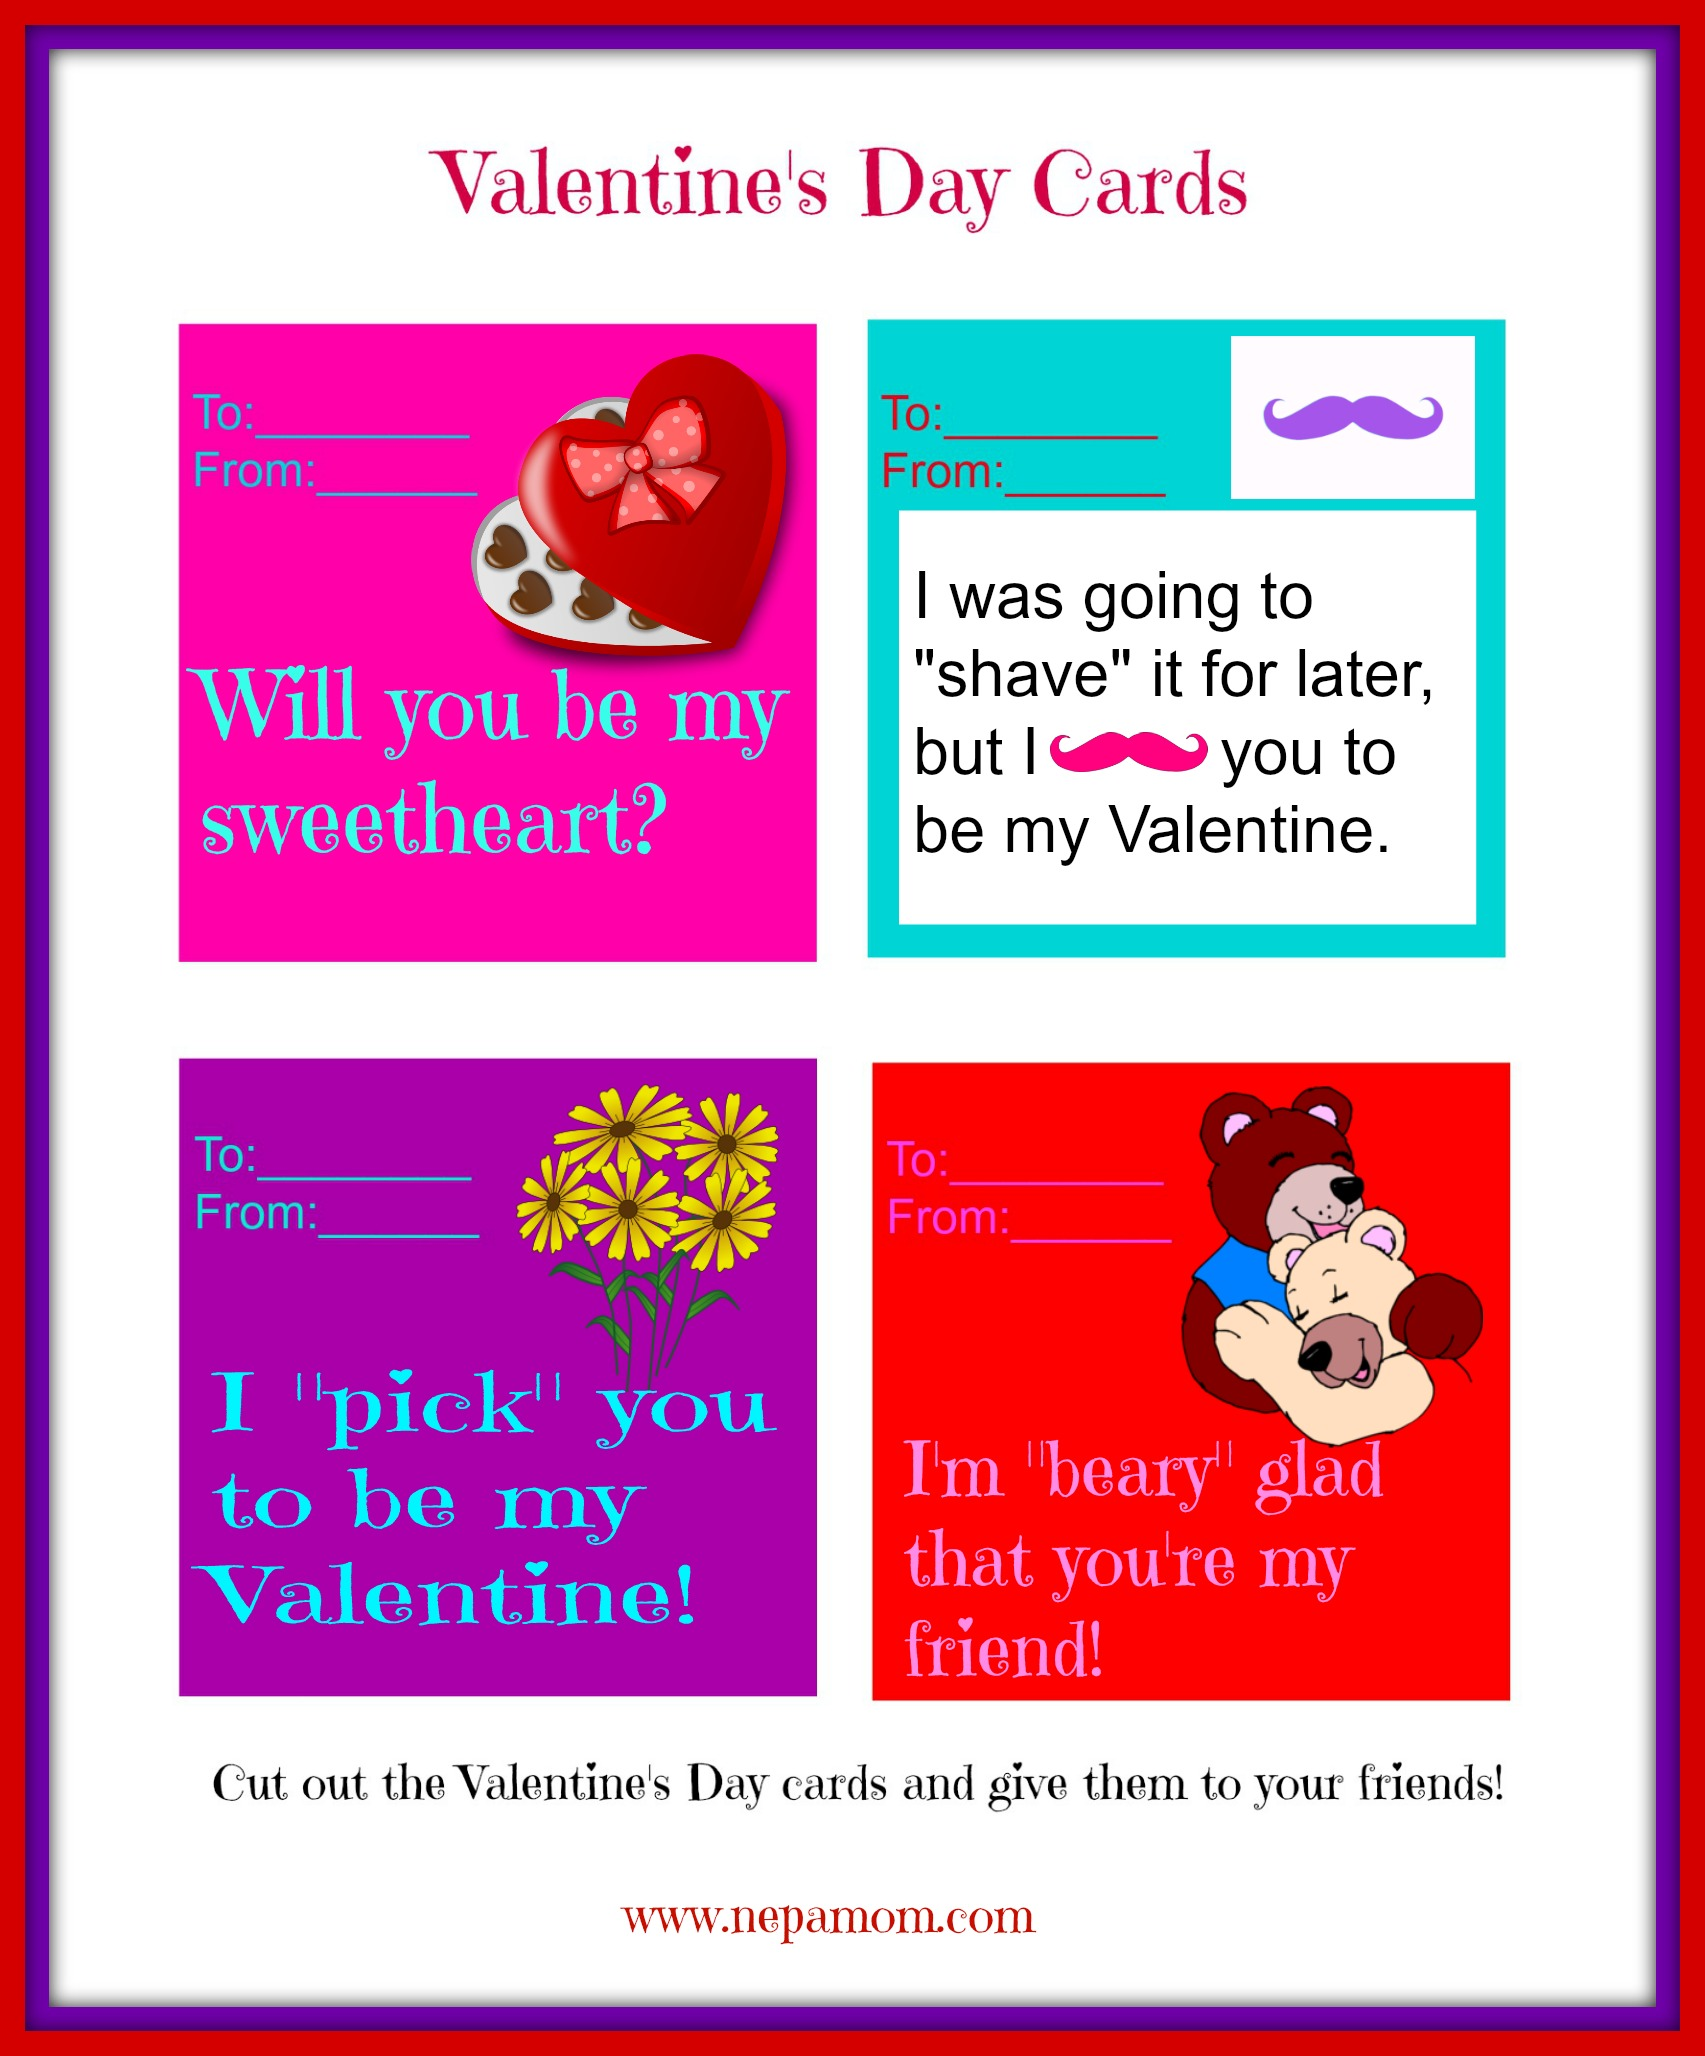 Printable Valentines Day Cards NEPA Mom – Valentine Card to Print